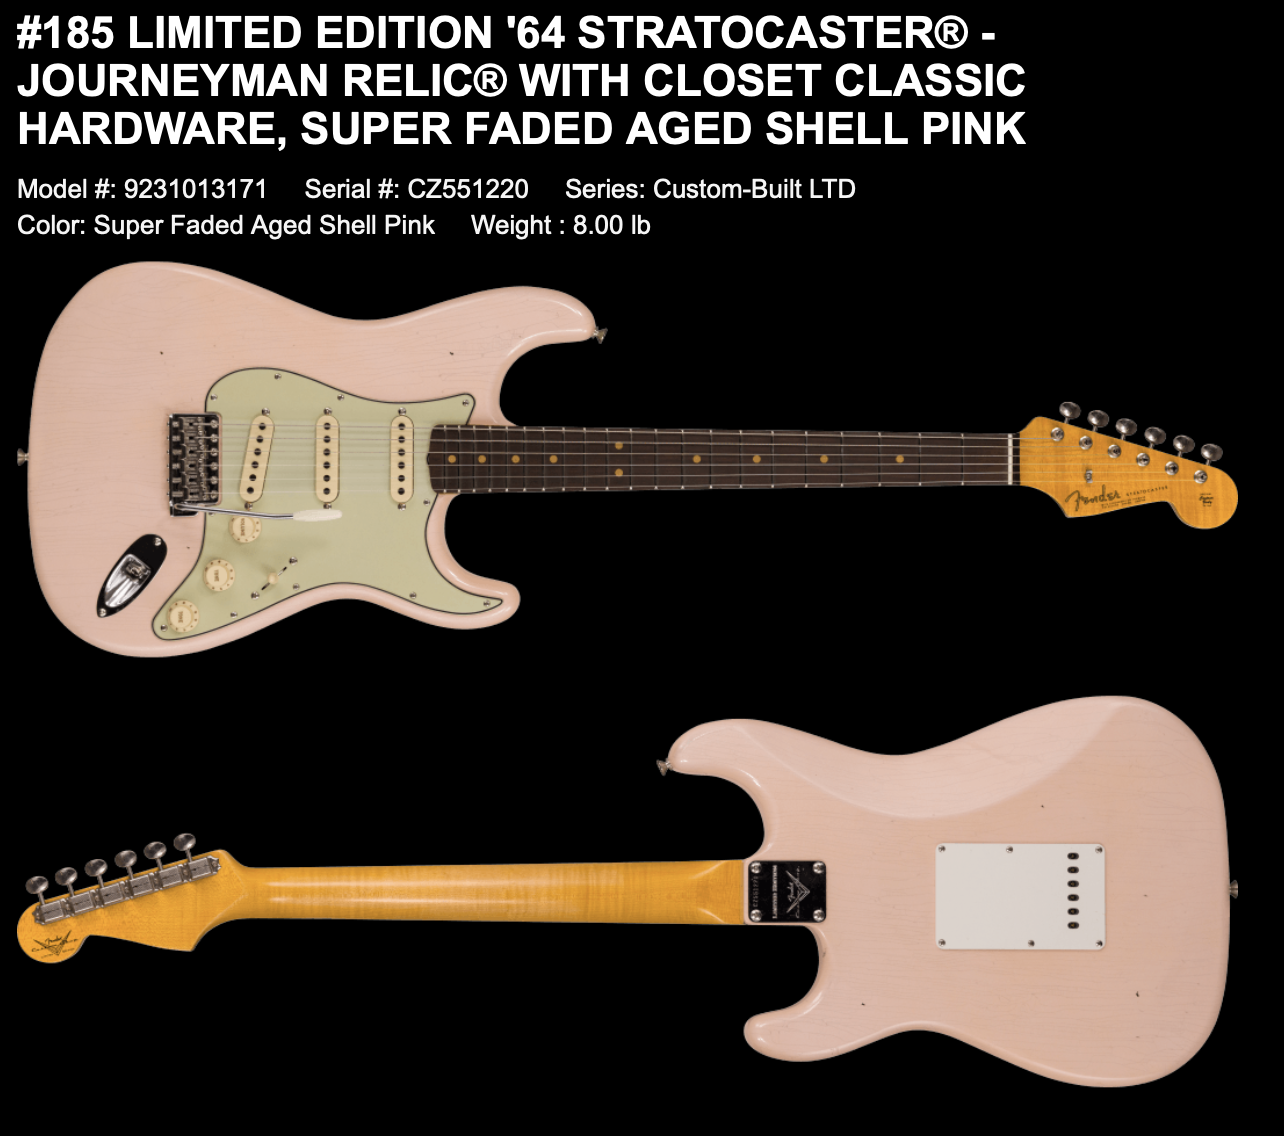 (PRE-ORDER) FENDER CUSTOM SHOP LIMITED EDITION '64 STRATOCASTER JOURNEYMAN RELIC WITH CLOSET CLASSIC HARDWARE IN SUPER FADED AGED SHELL PINK